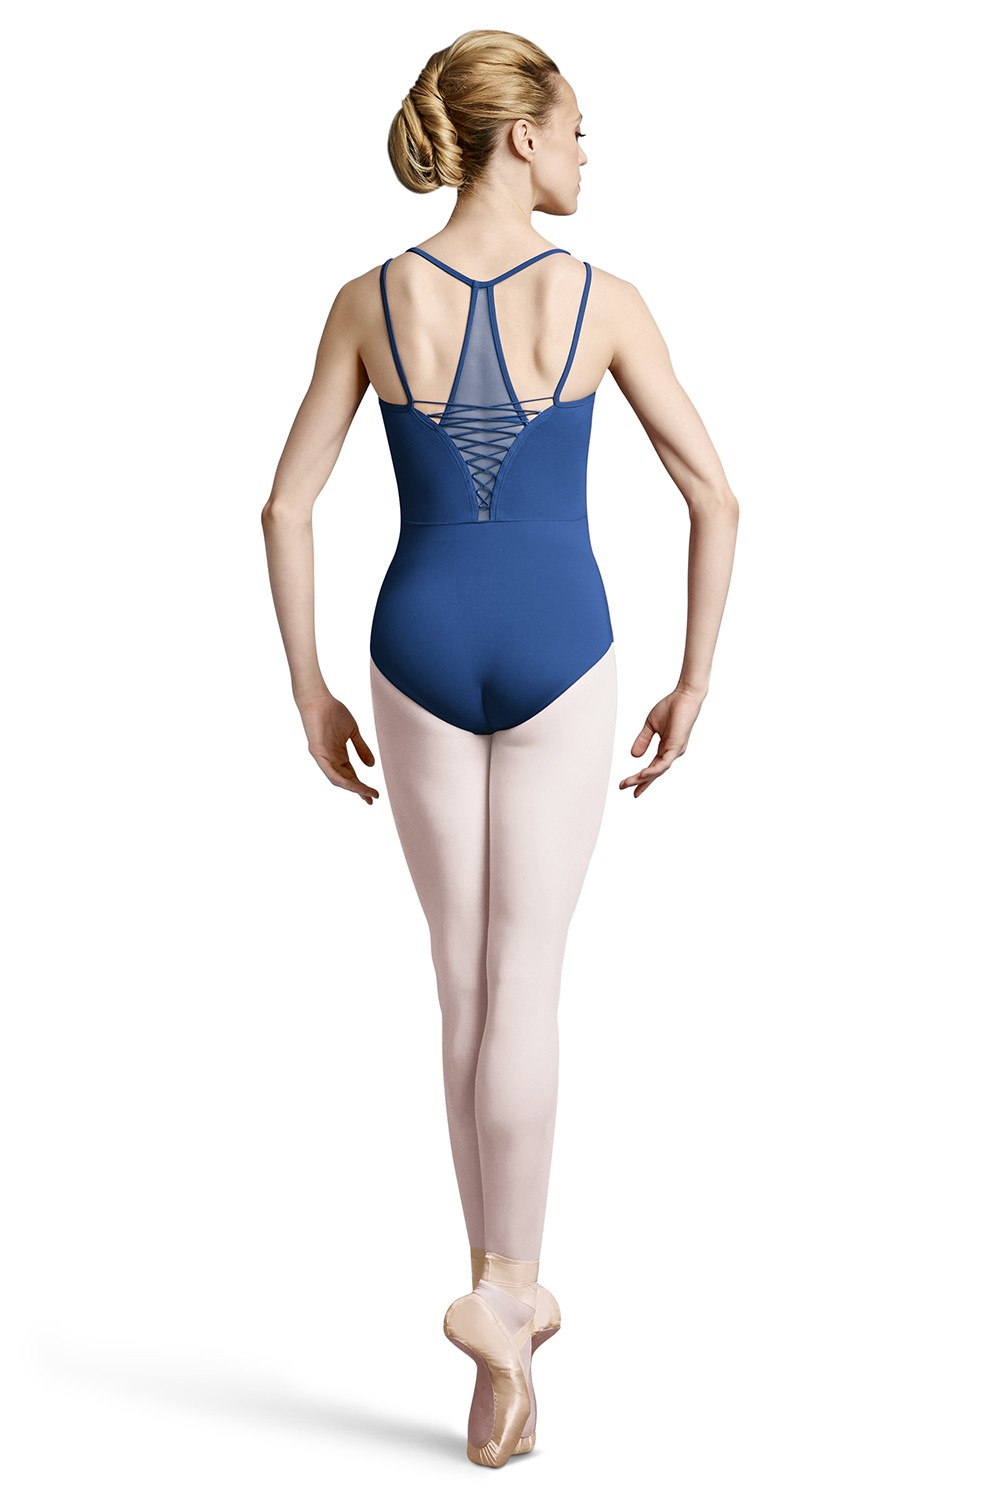 Clidna - Tween Tween Dance Leotards